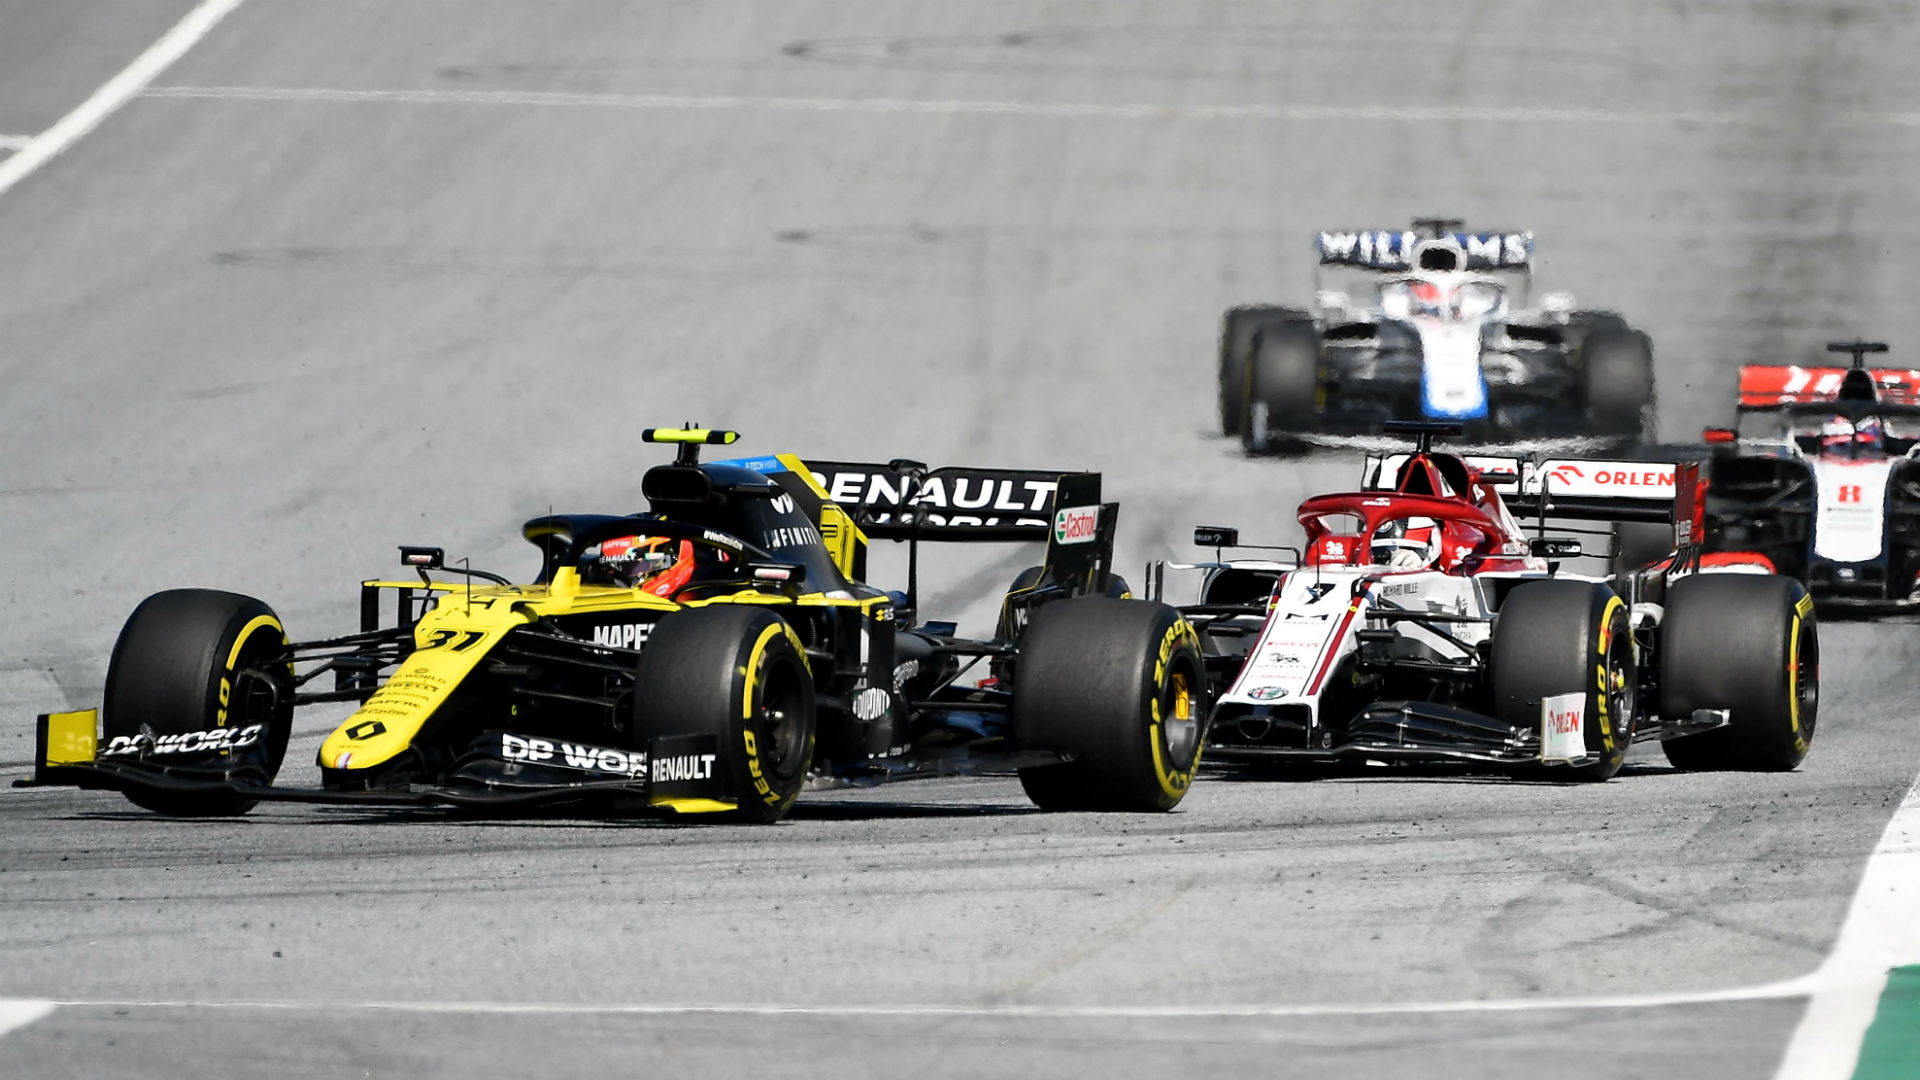 F1 schedule 2020: Date, start time, TV channel for every Formula 1 race 1